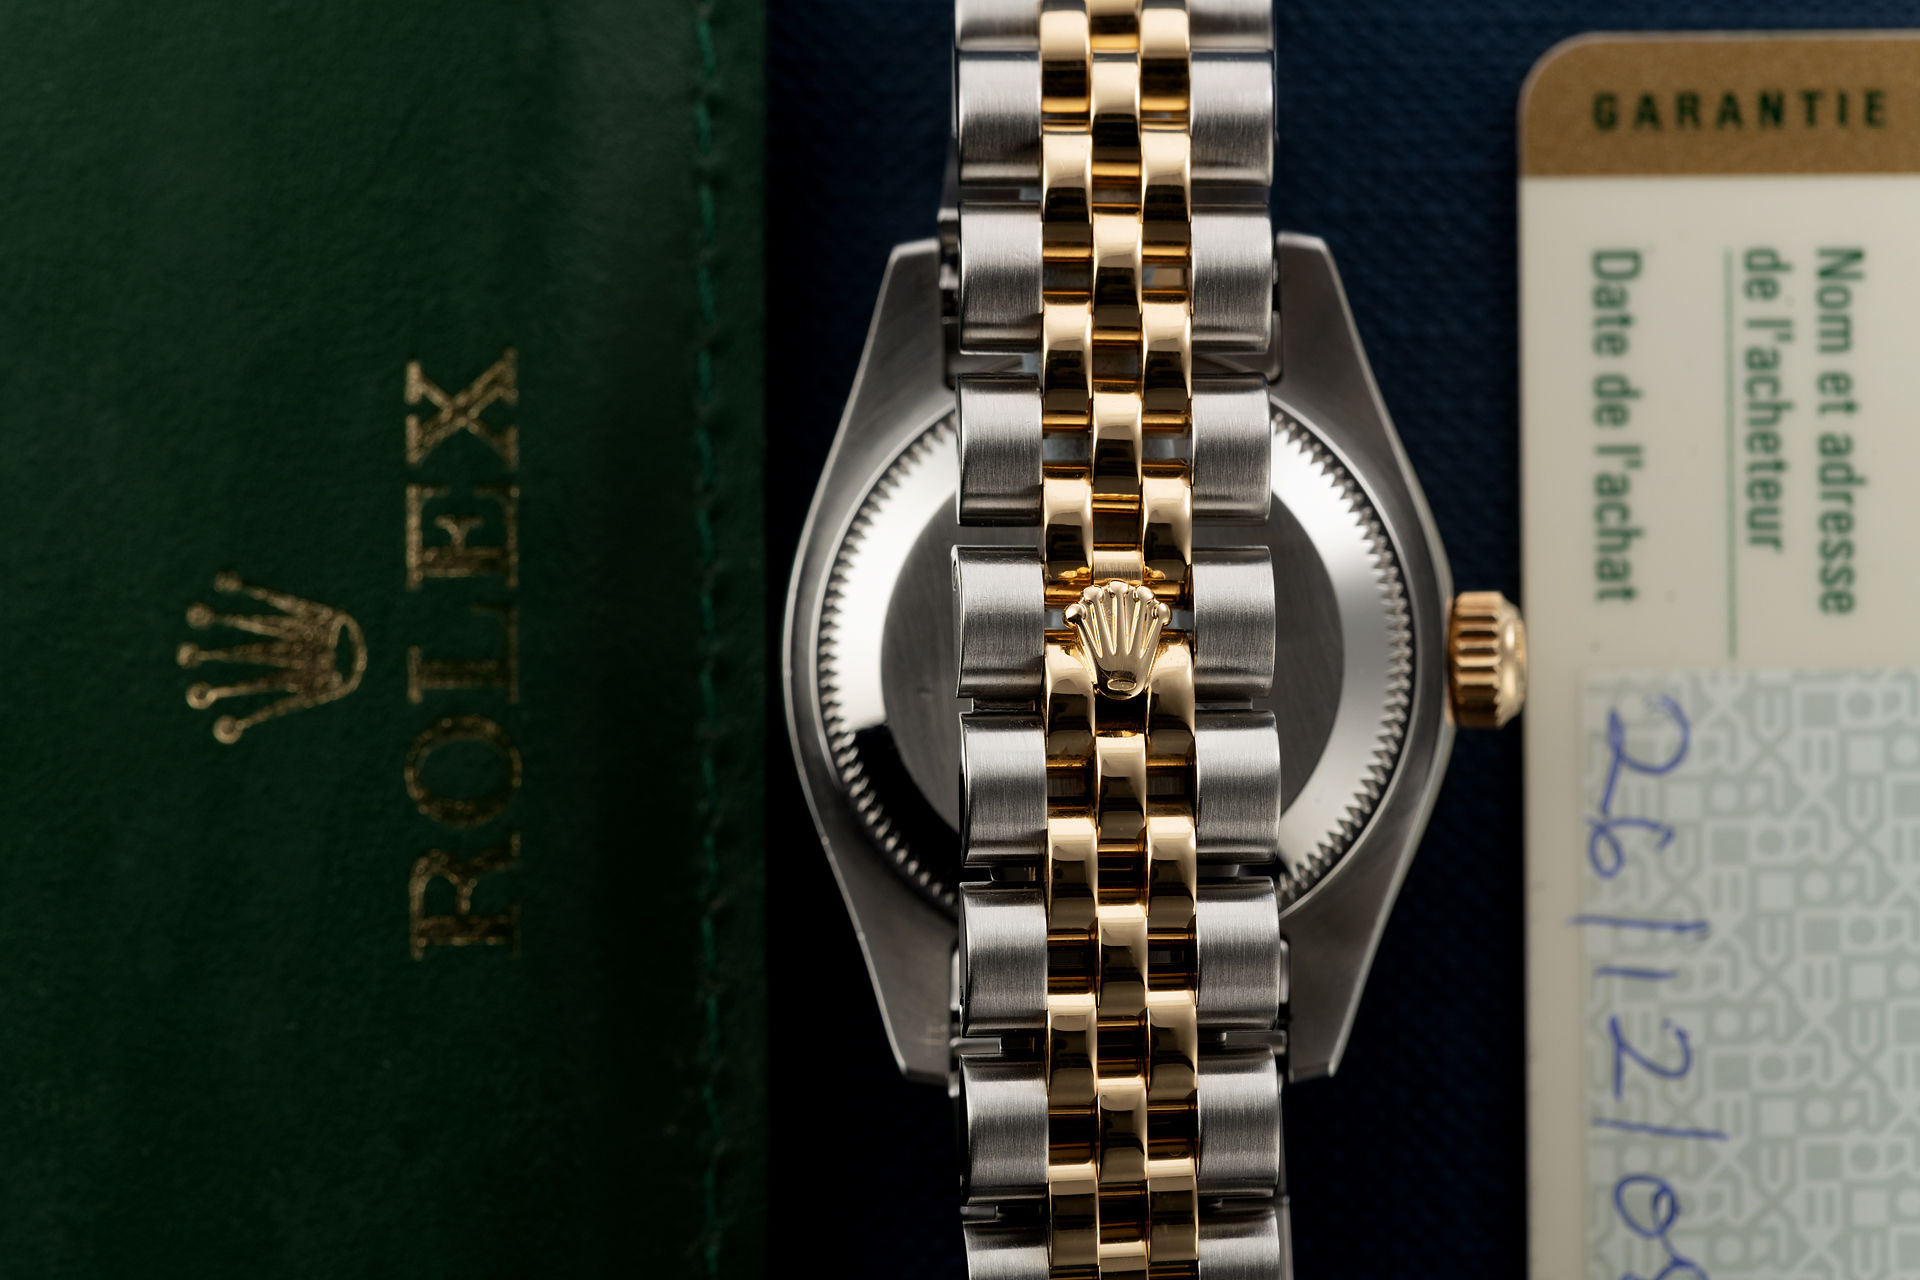 18ct Gold & Steel | ref 179173 | Rolex Lady-Datejust